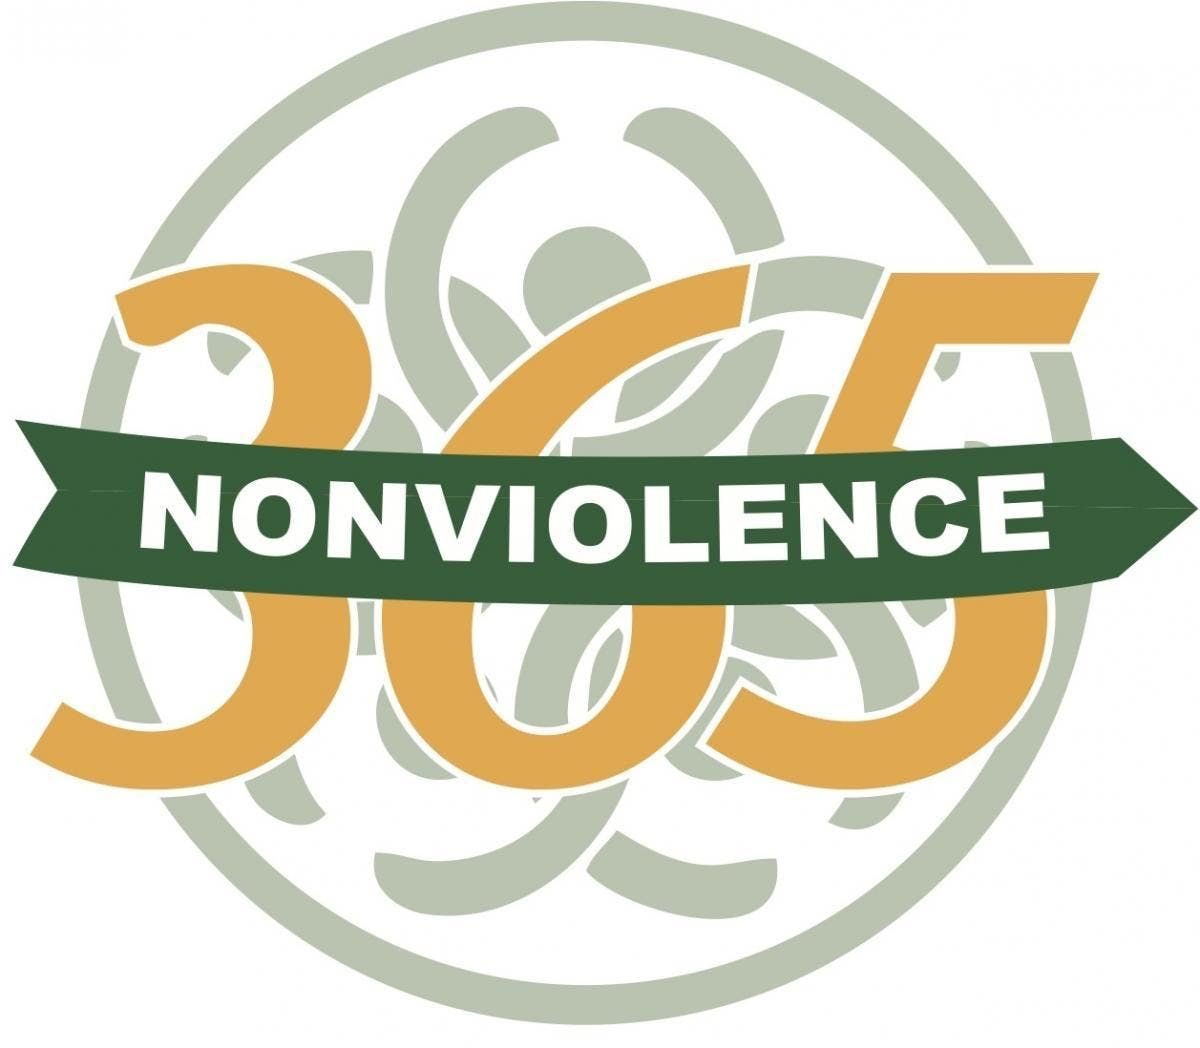 2-Day Nonviolence365 Training -  March 15th & 16th